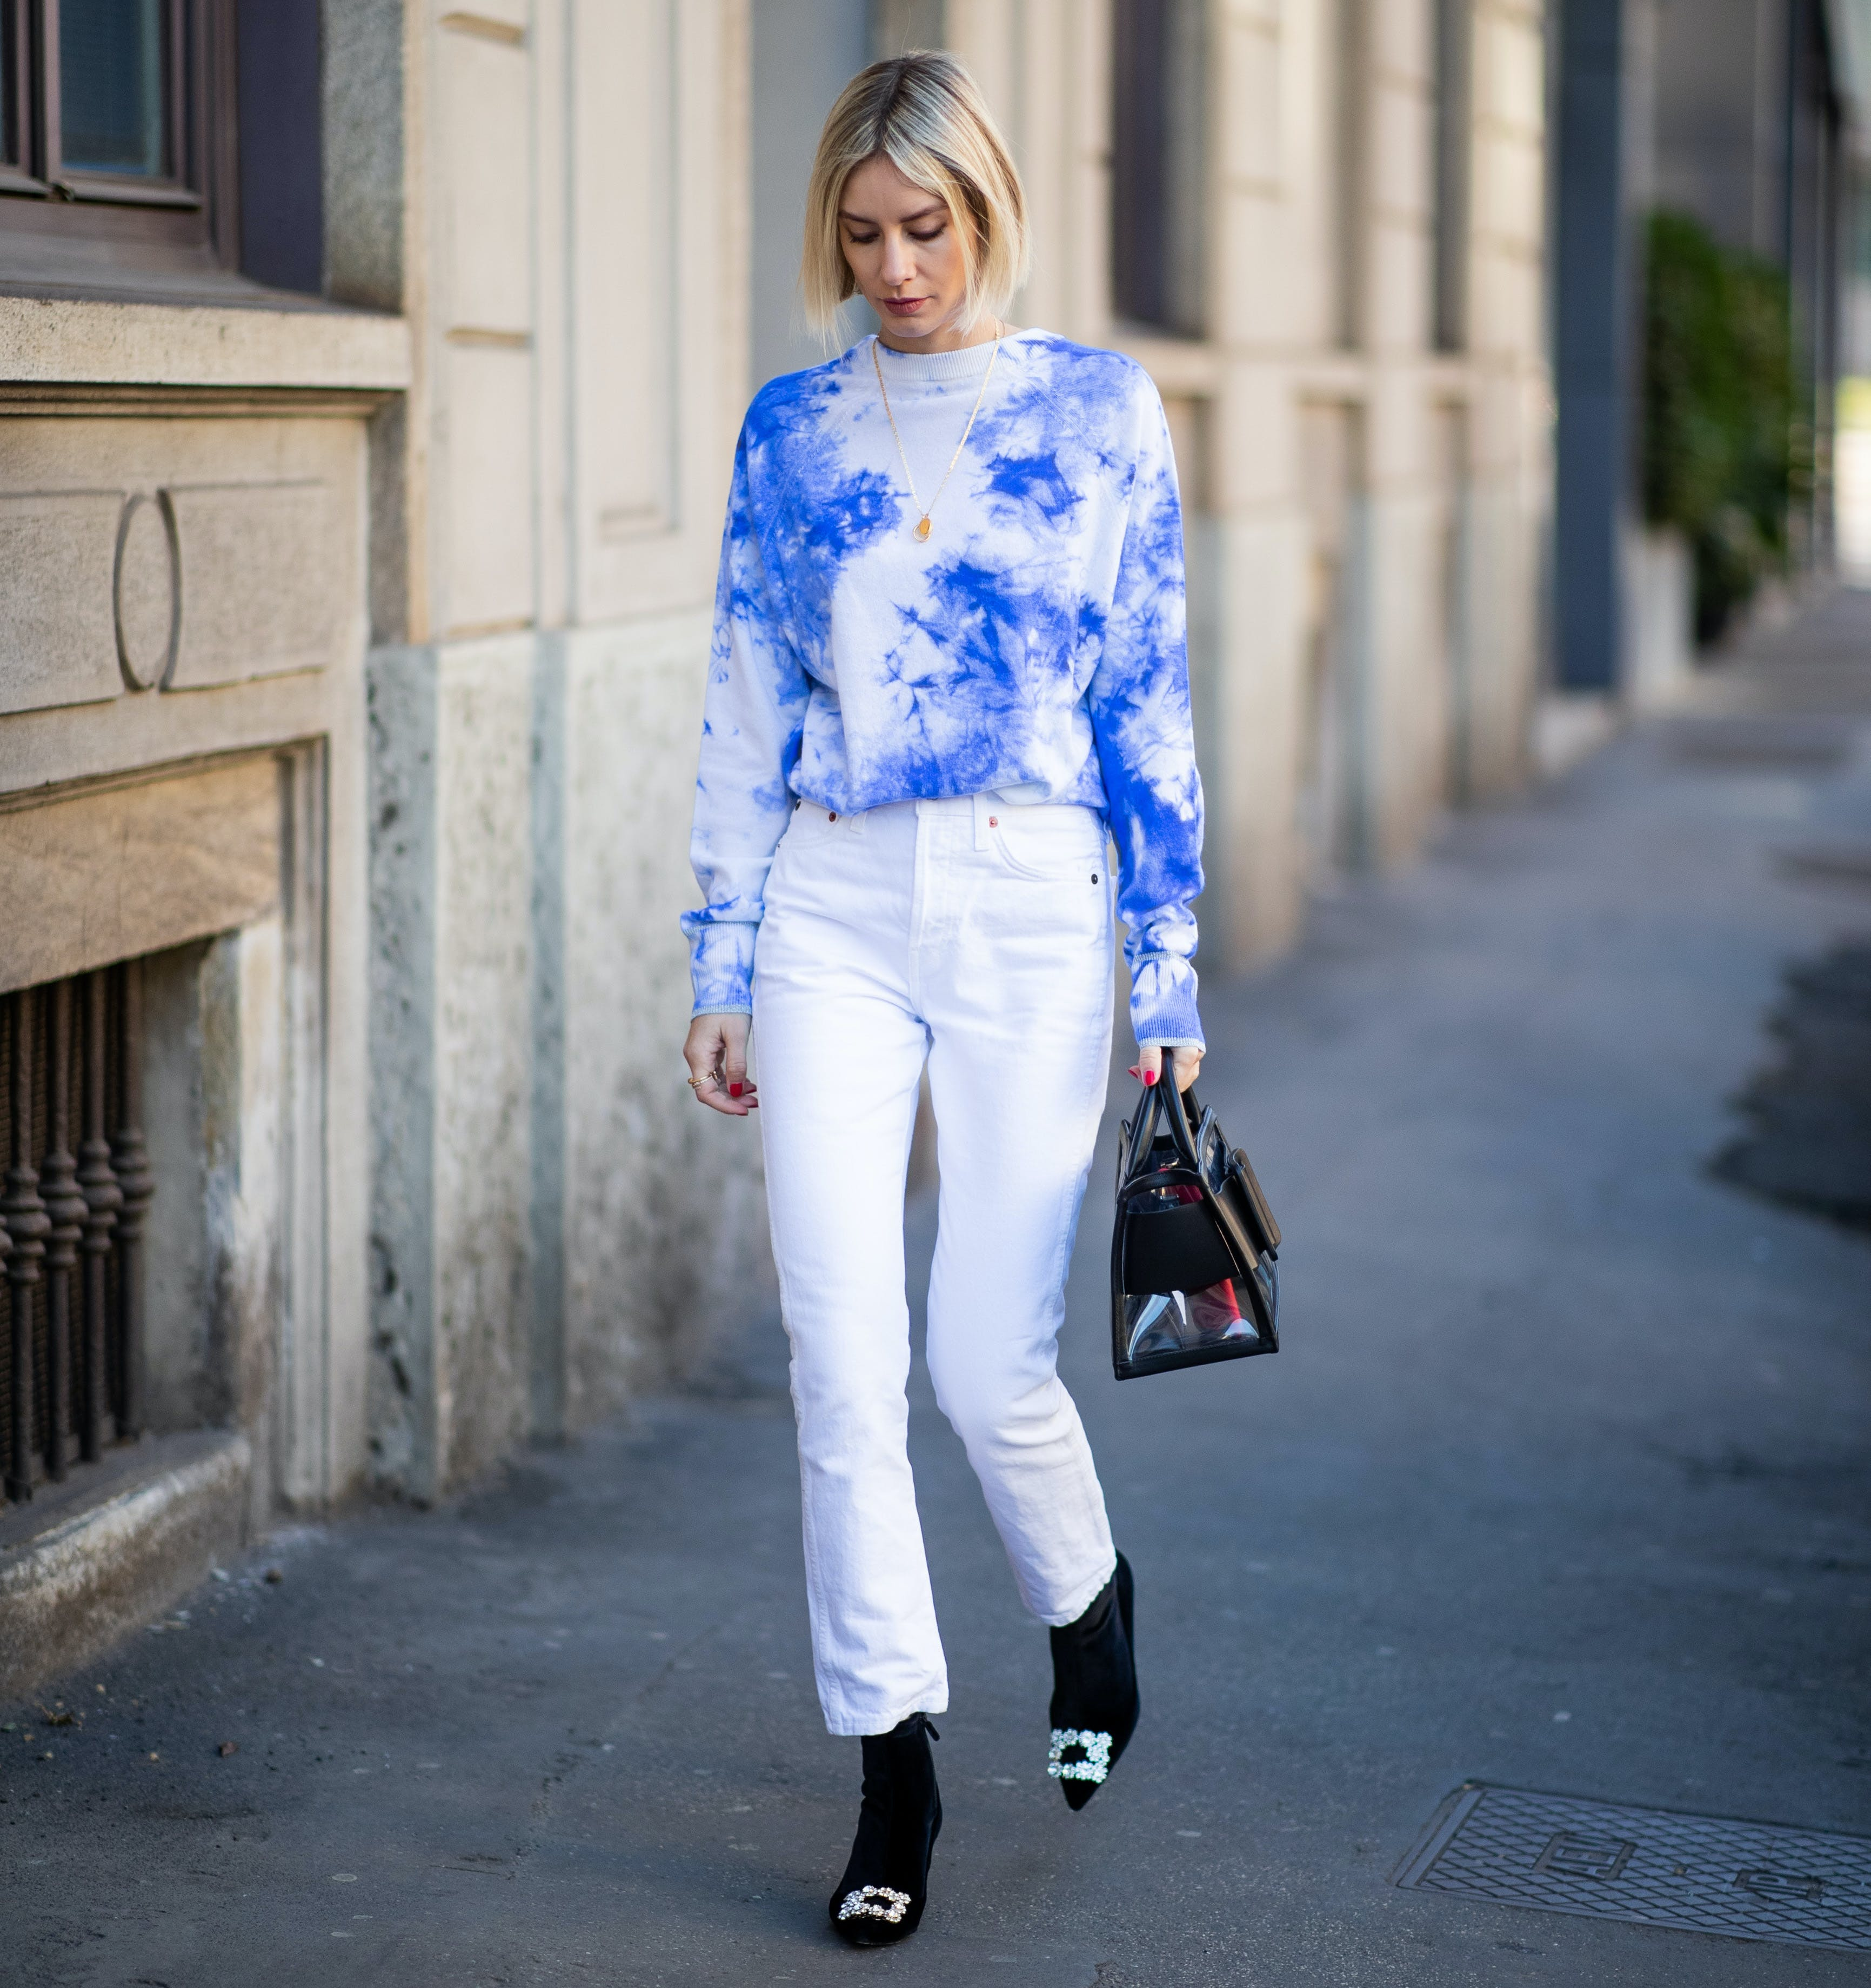 816871894 30 April Outfit Ideas - PureWow